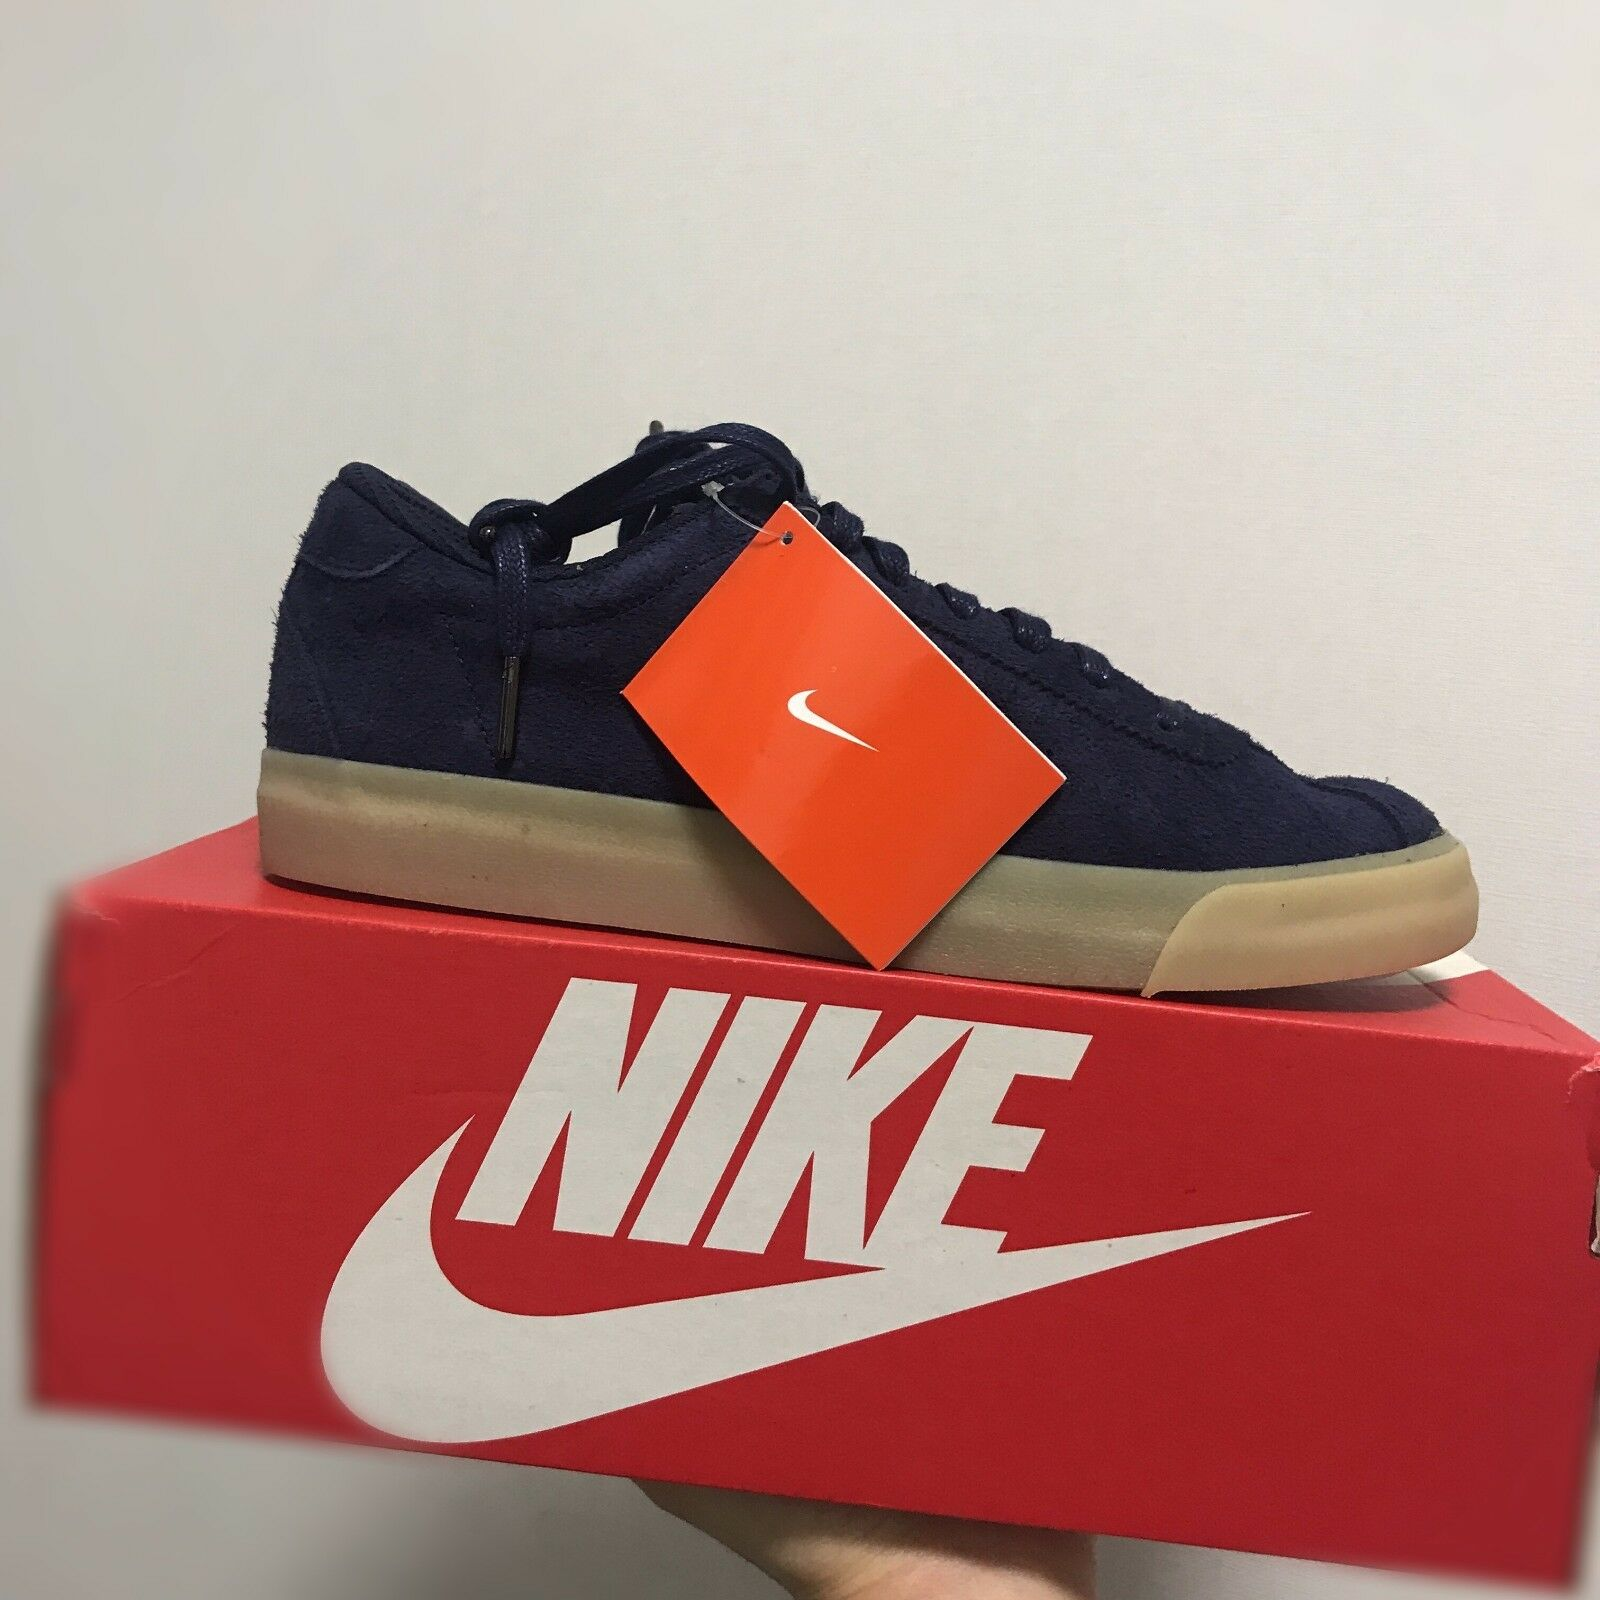 Nike Match Classic Suede Classic shoes Navy 844611-400 Size 8-10